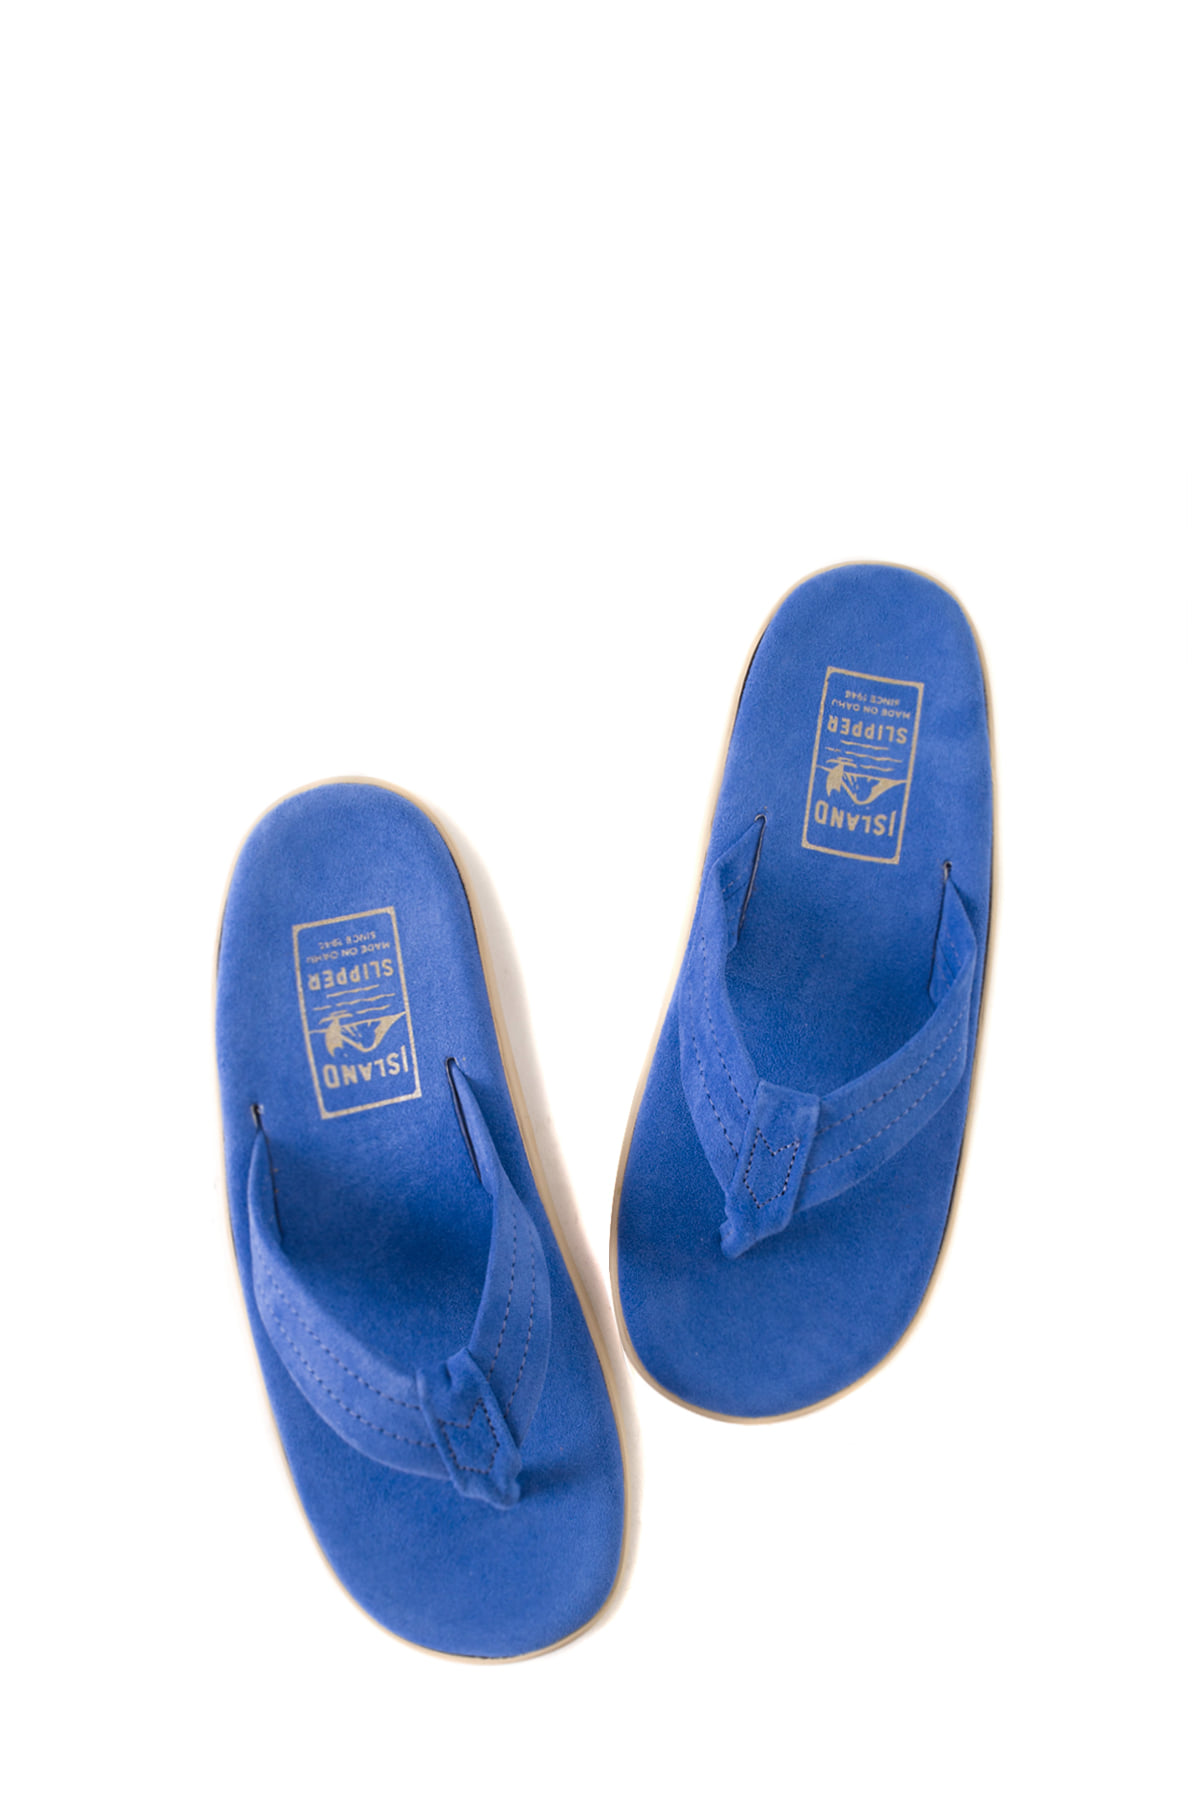 ISLAND SLIPPER : PT203 (Electric Blue Suede)